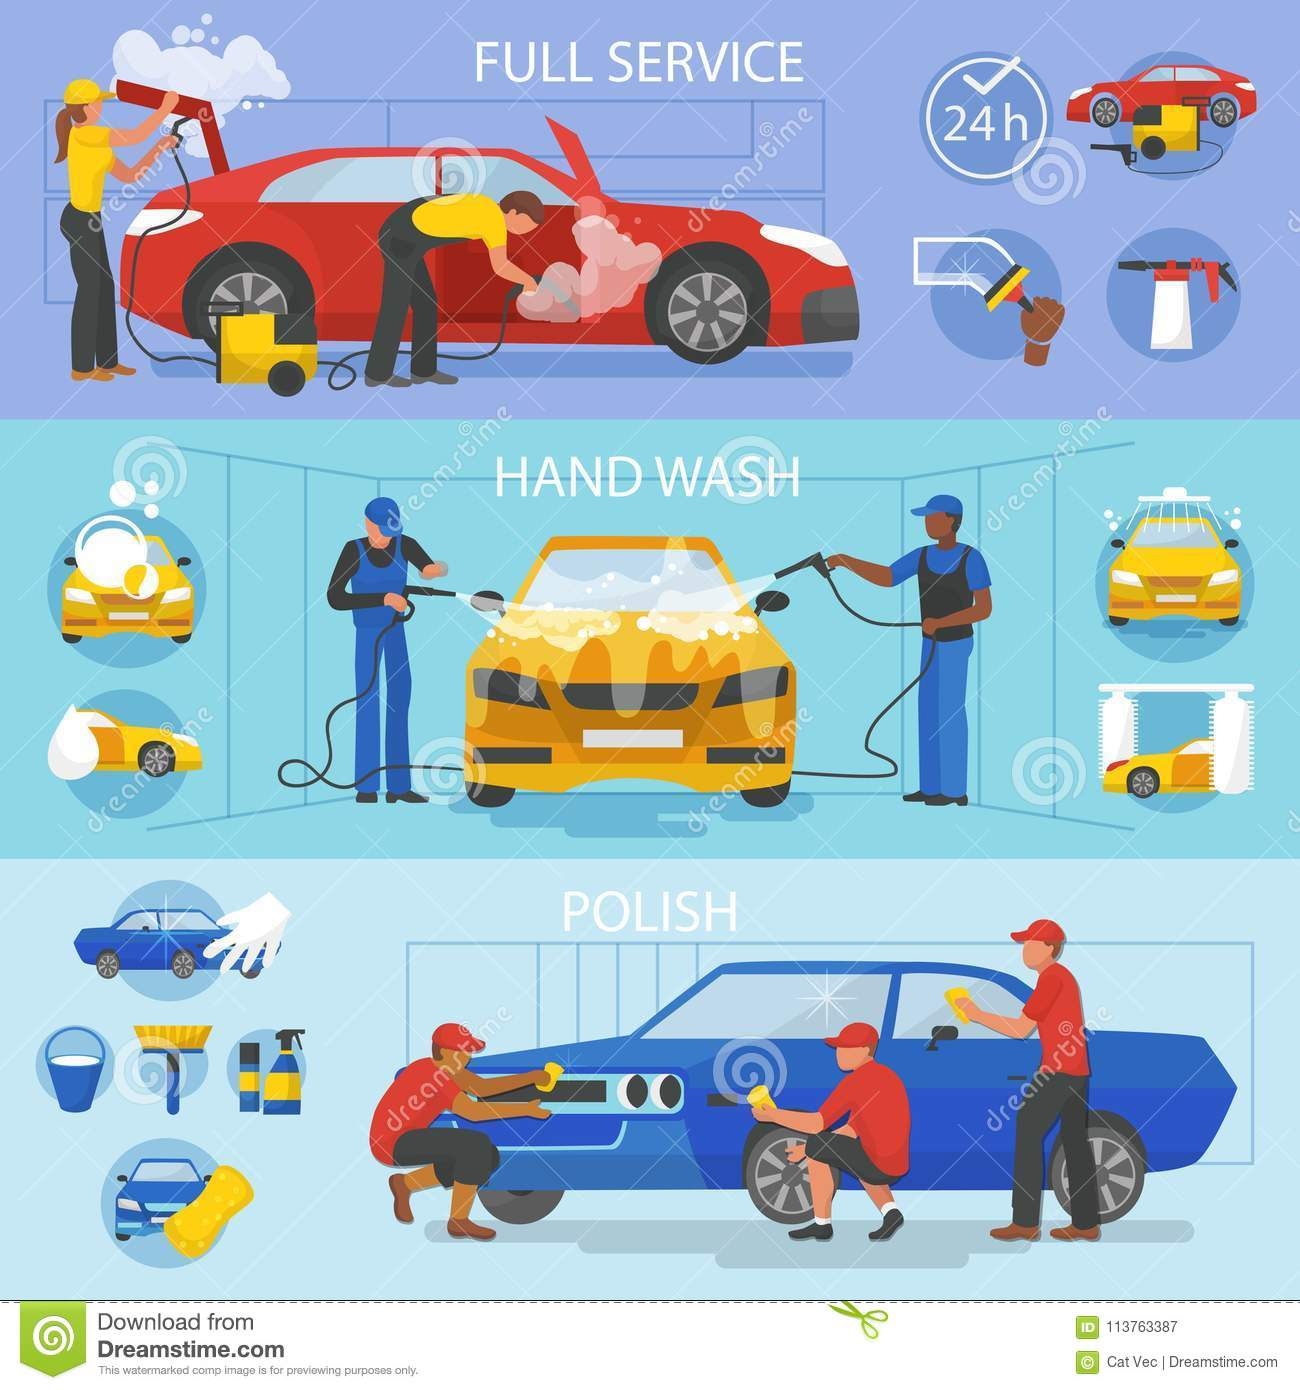 Car wash vector car-washing service with people cleaning auto or vehicle illustration set of car-wash and characters